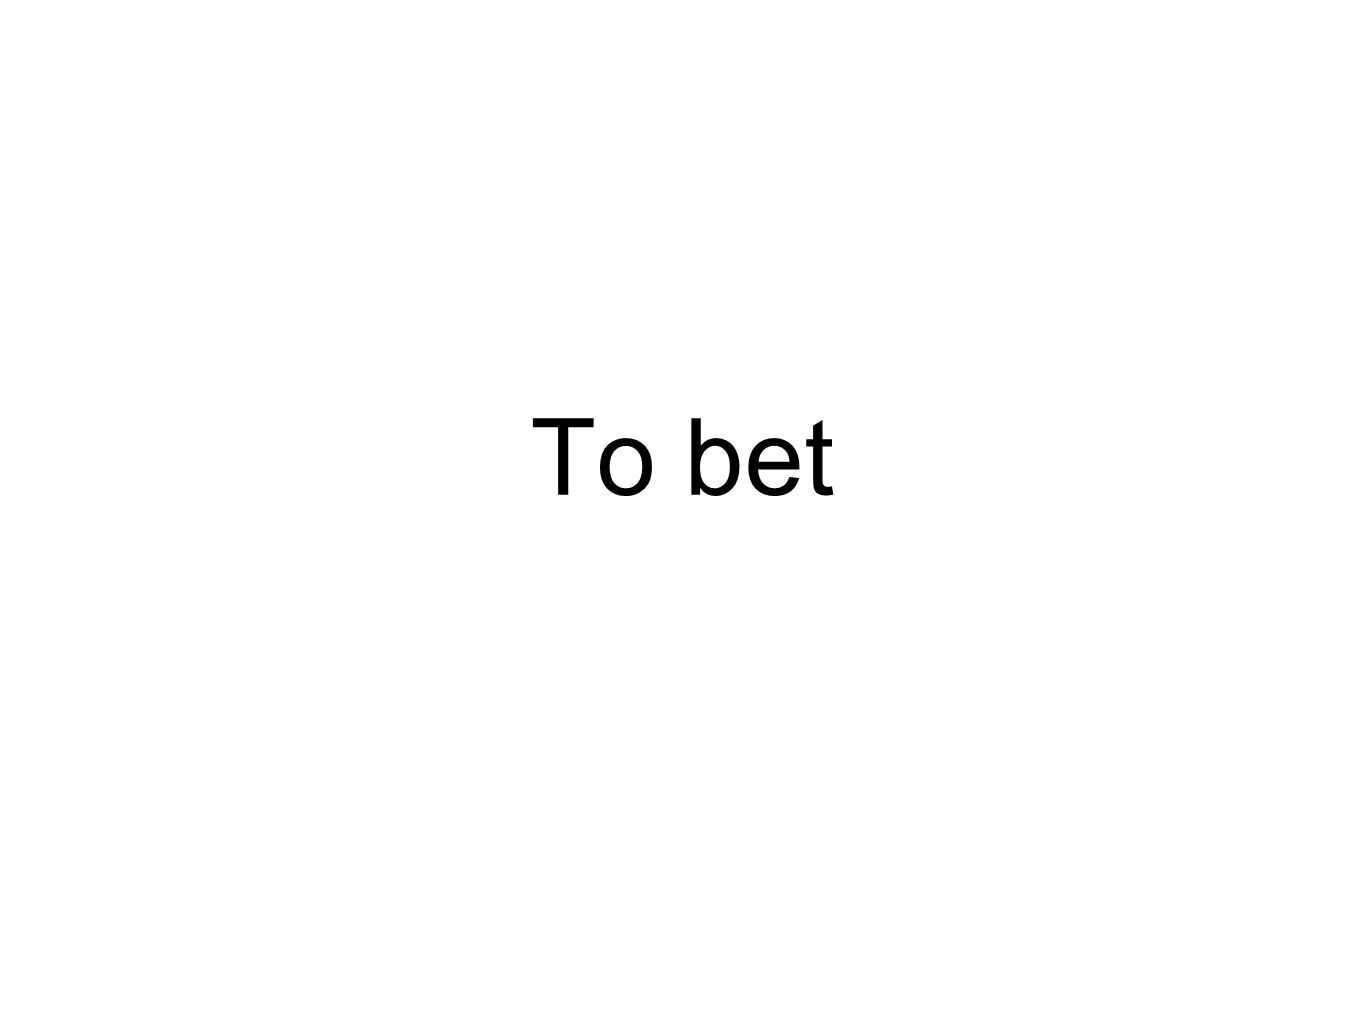 To bet